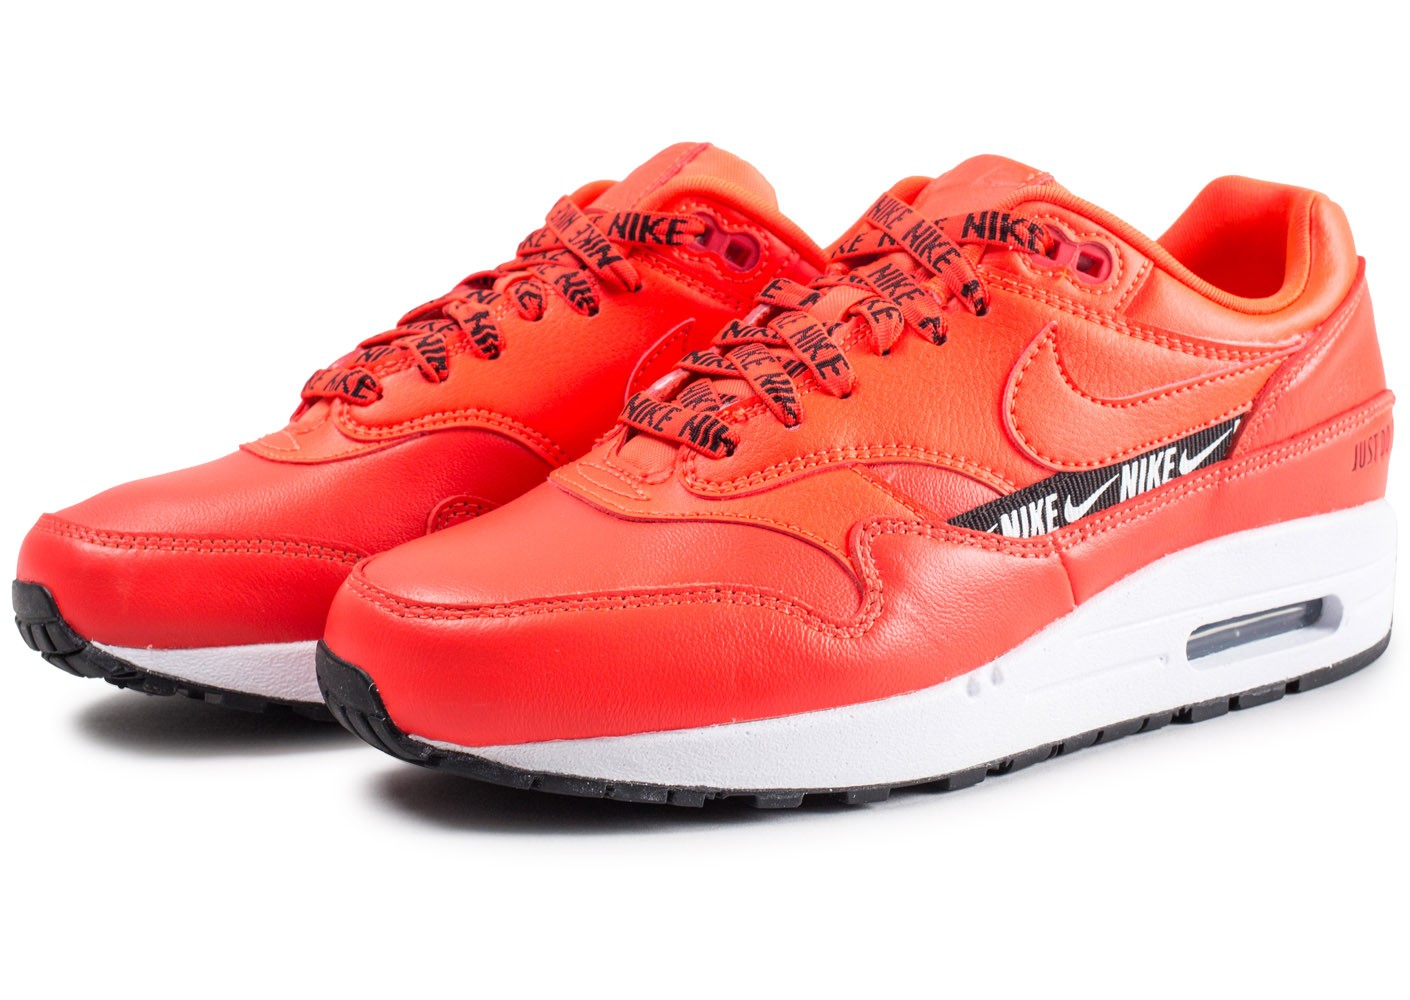 prix d'usine c5dfe 7e12a Nike Air Max 1 SE Overbranded rouge femme - Chaussures ...